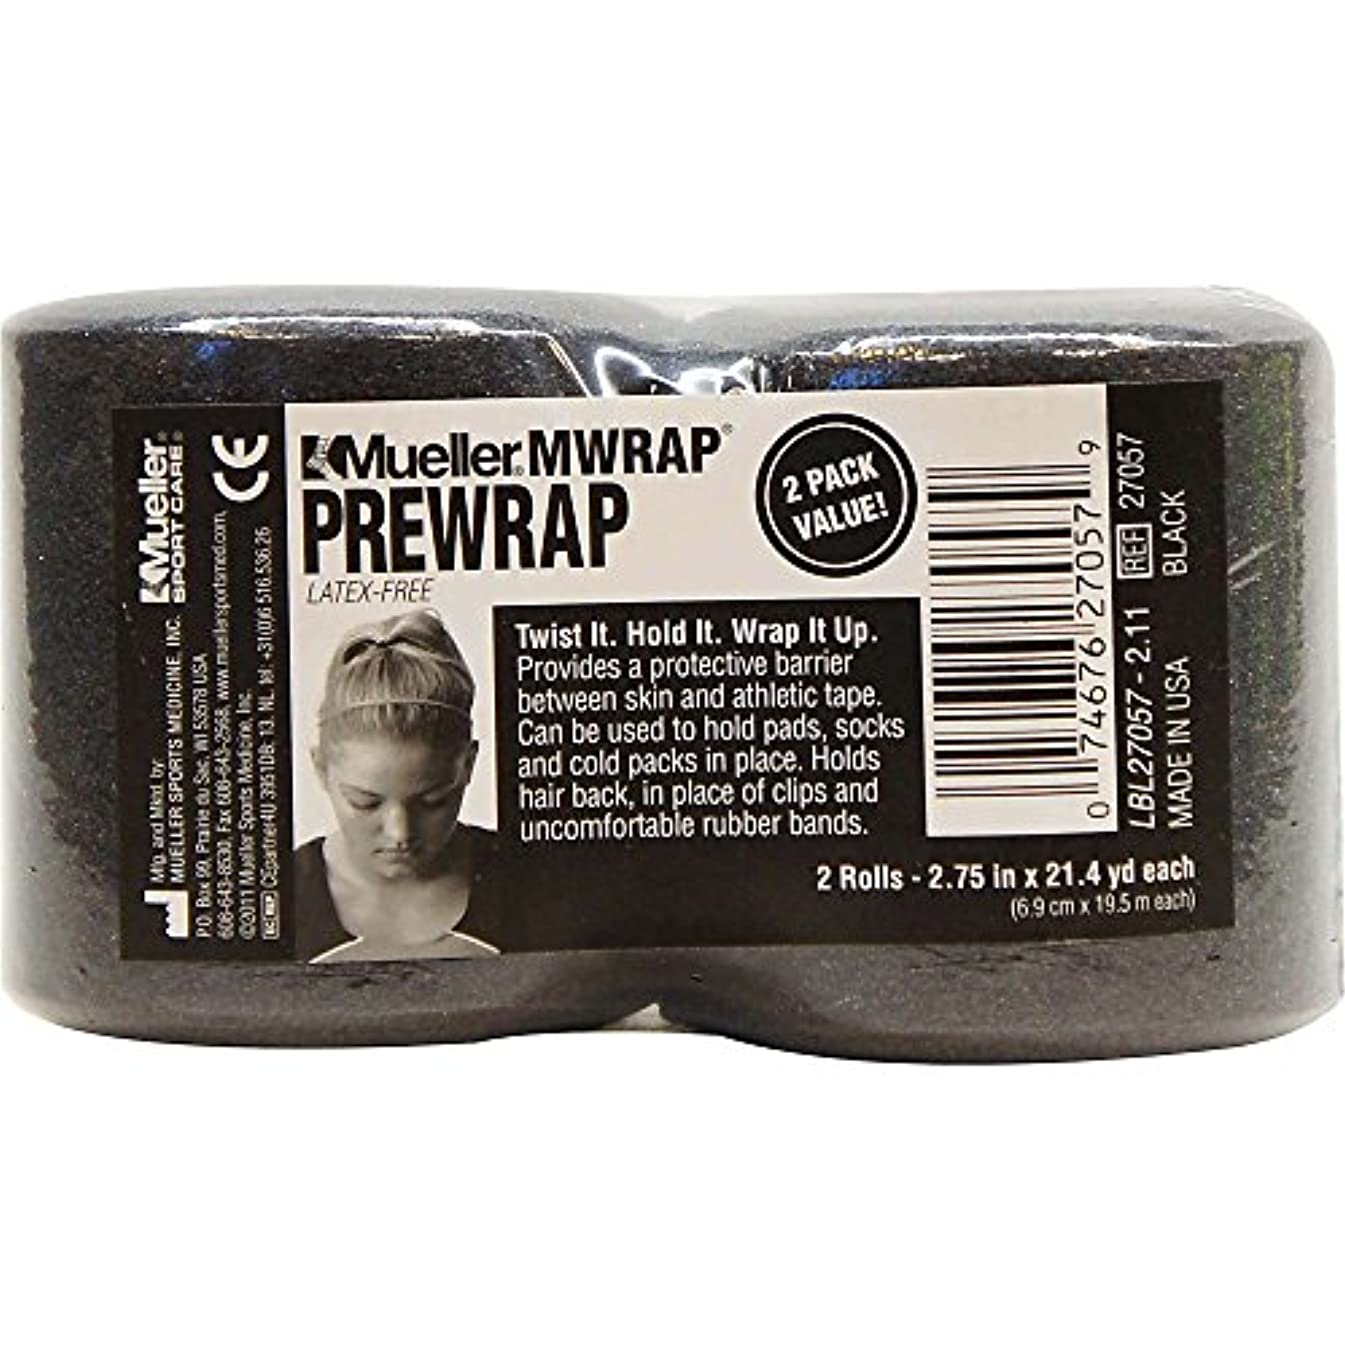 Mueller M Wrap 2-Pack Black Rolls